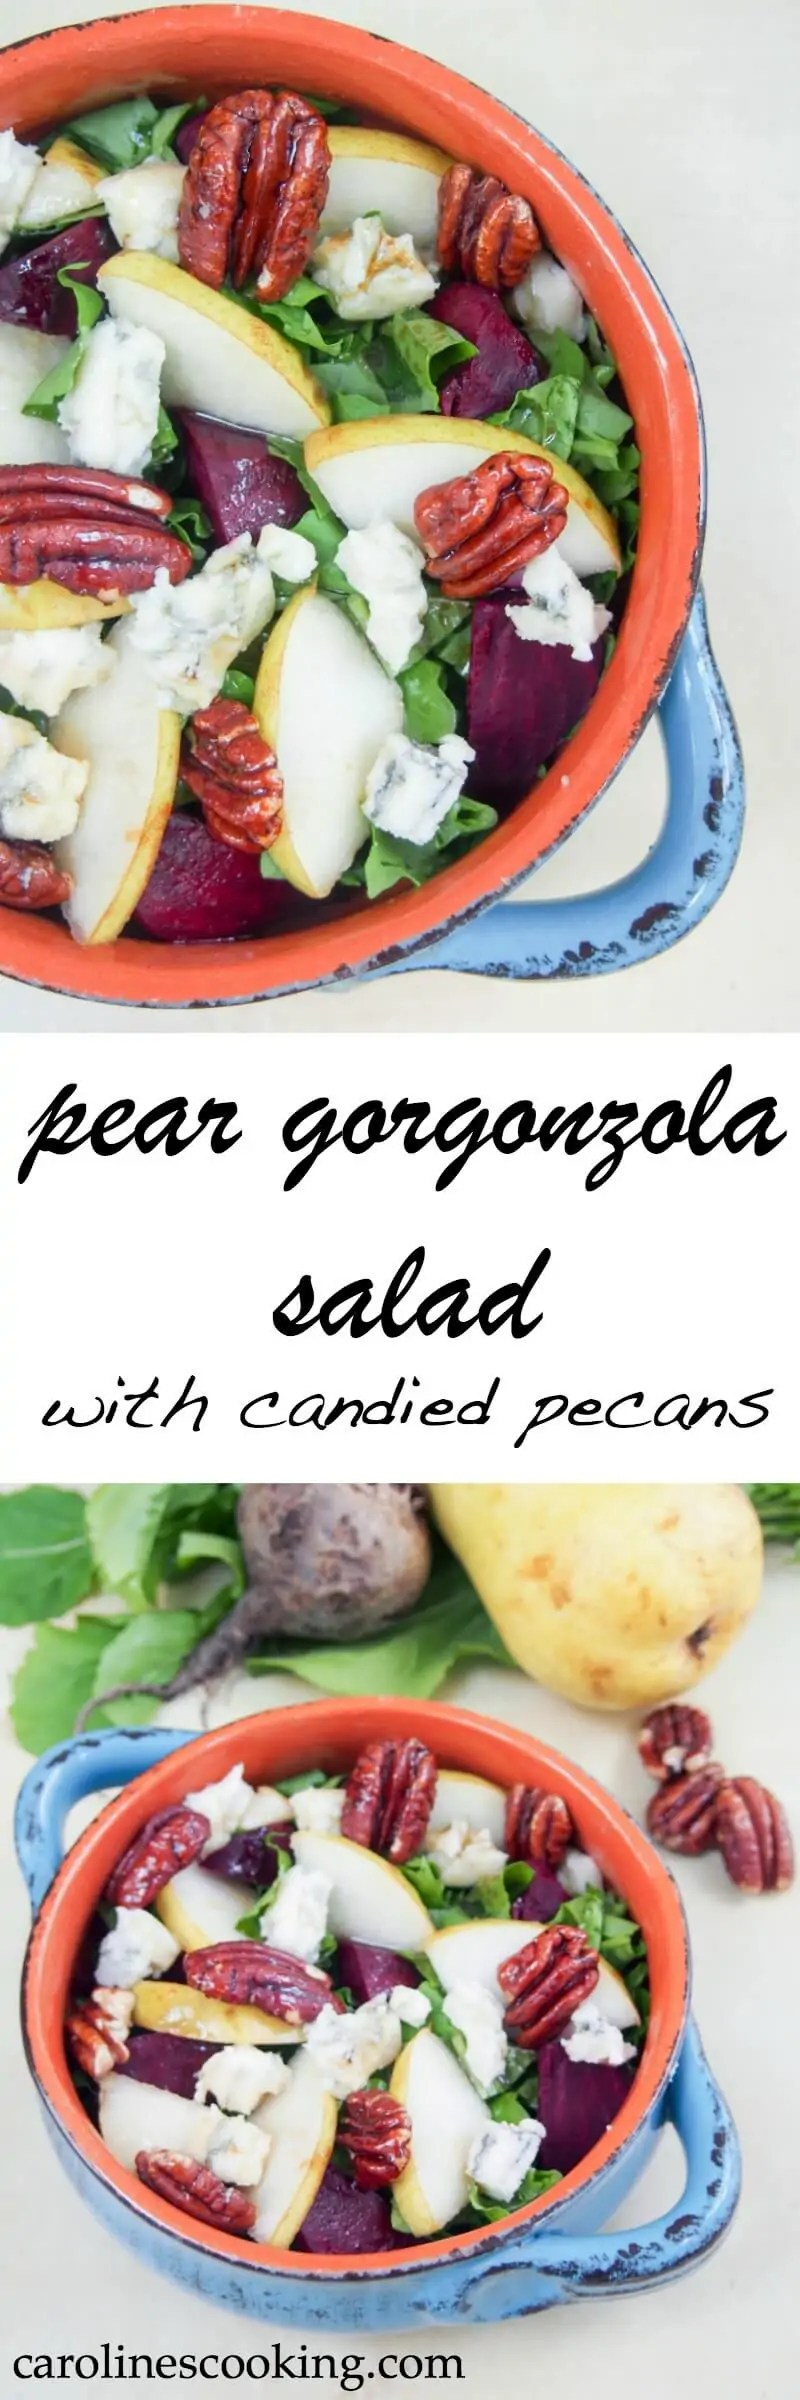 Pear gorgonzola salad with candied pecans - quick to make, only a few ingredients but full of flavor. Plus a healthier version of candied pecans to go on top making this a great healthy side or lunch.